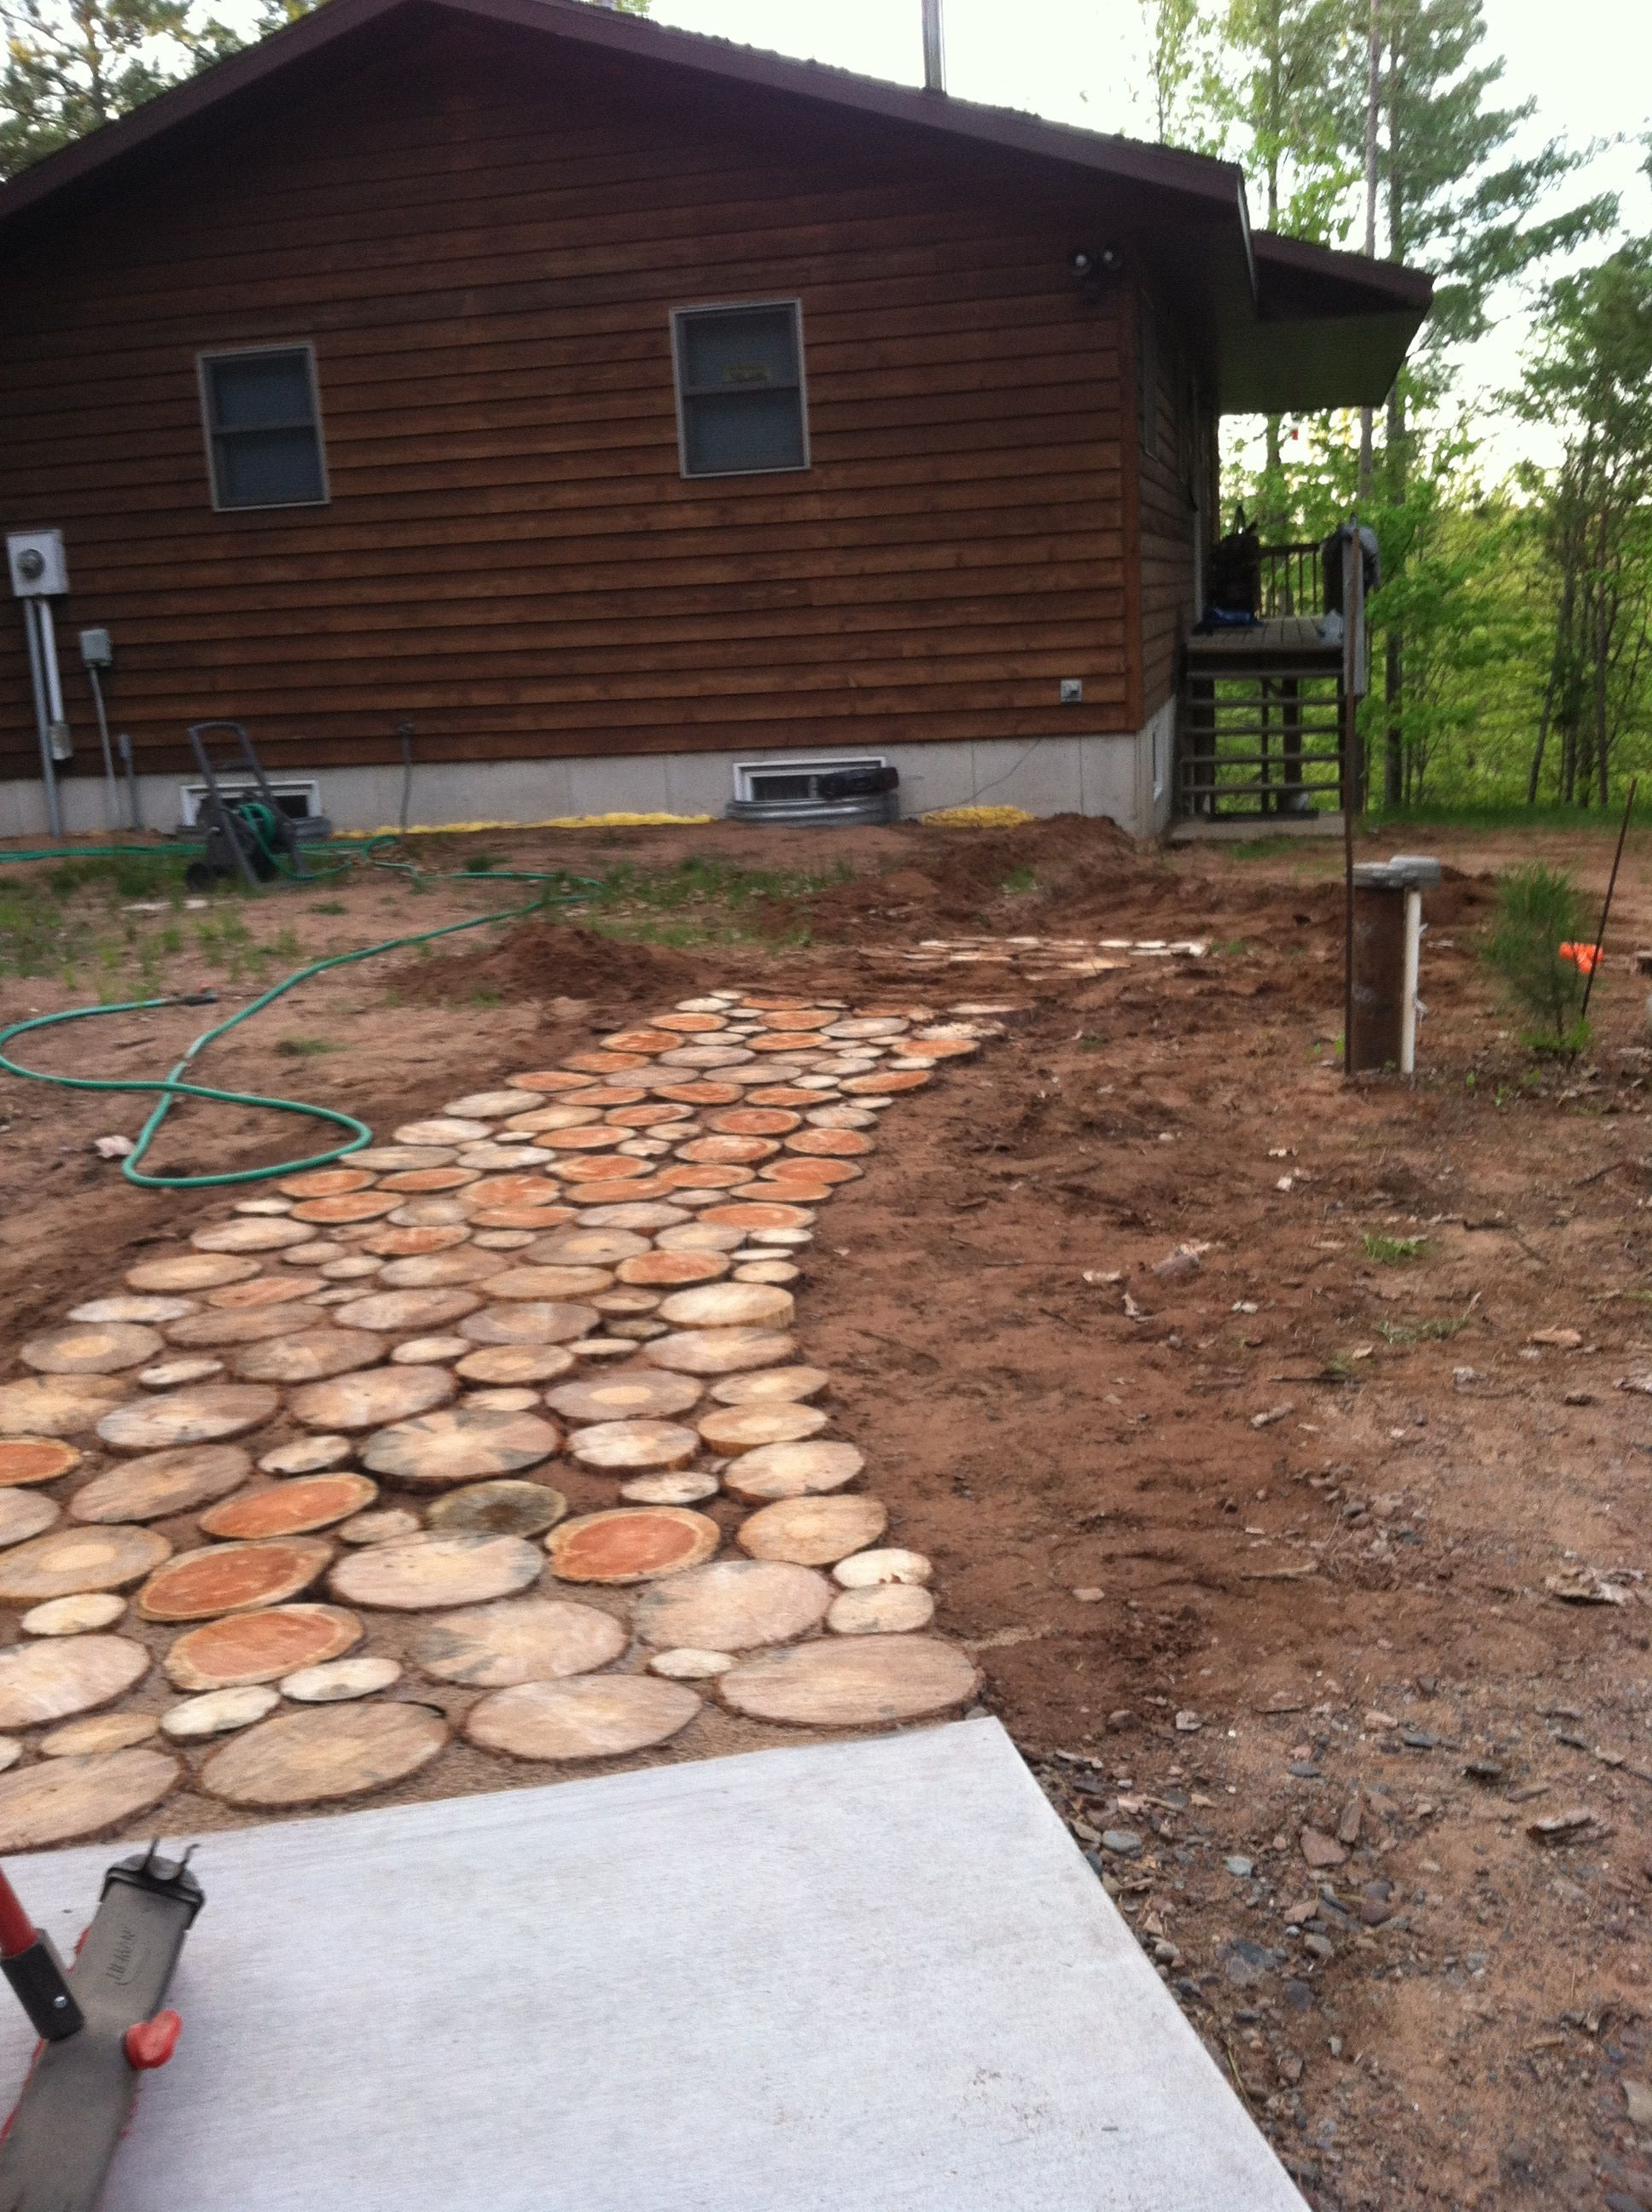 This Is Walkway Created From Using Tree Trunk Slices For Pavers! Fun And A  Days